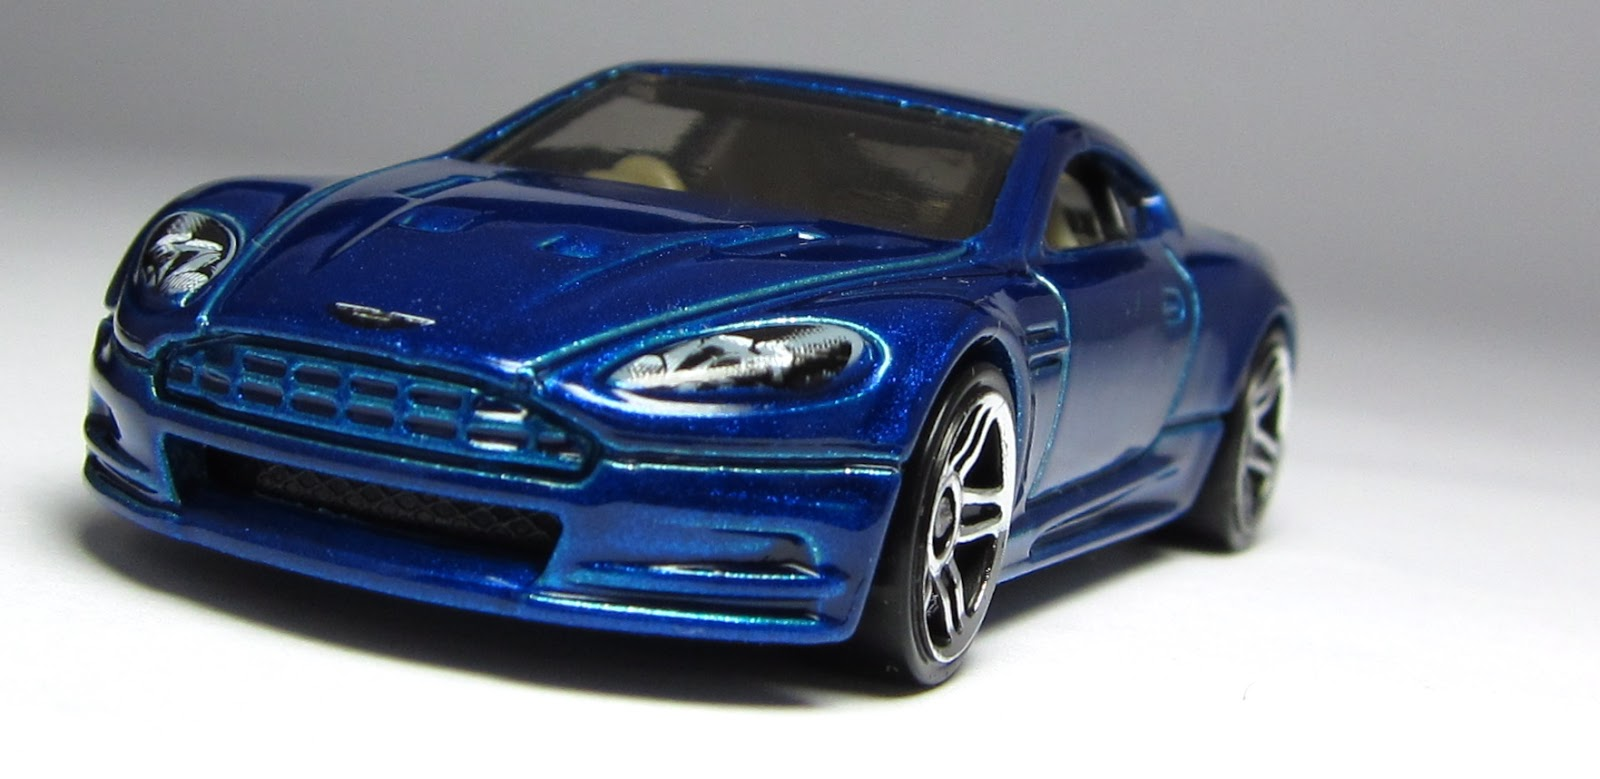 First Look: Hot Wheels <b>Aston</b>